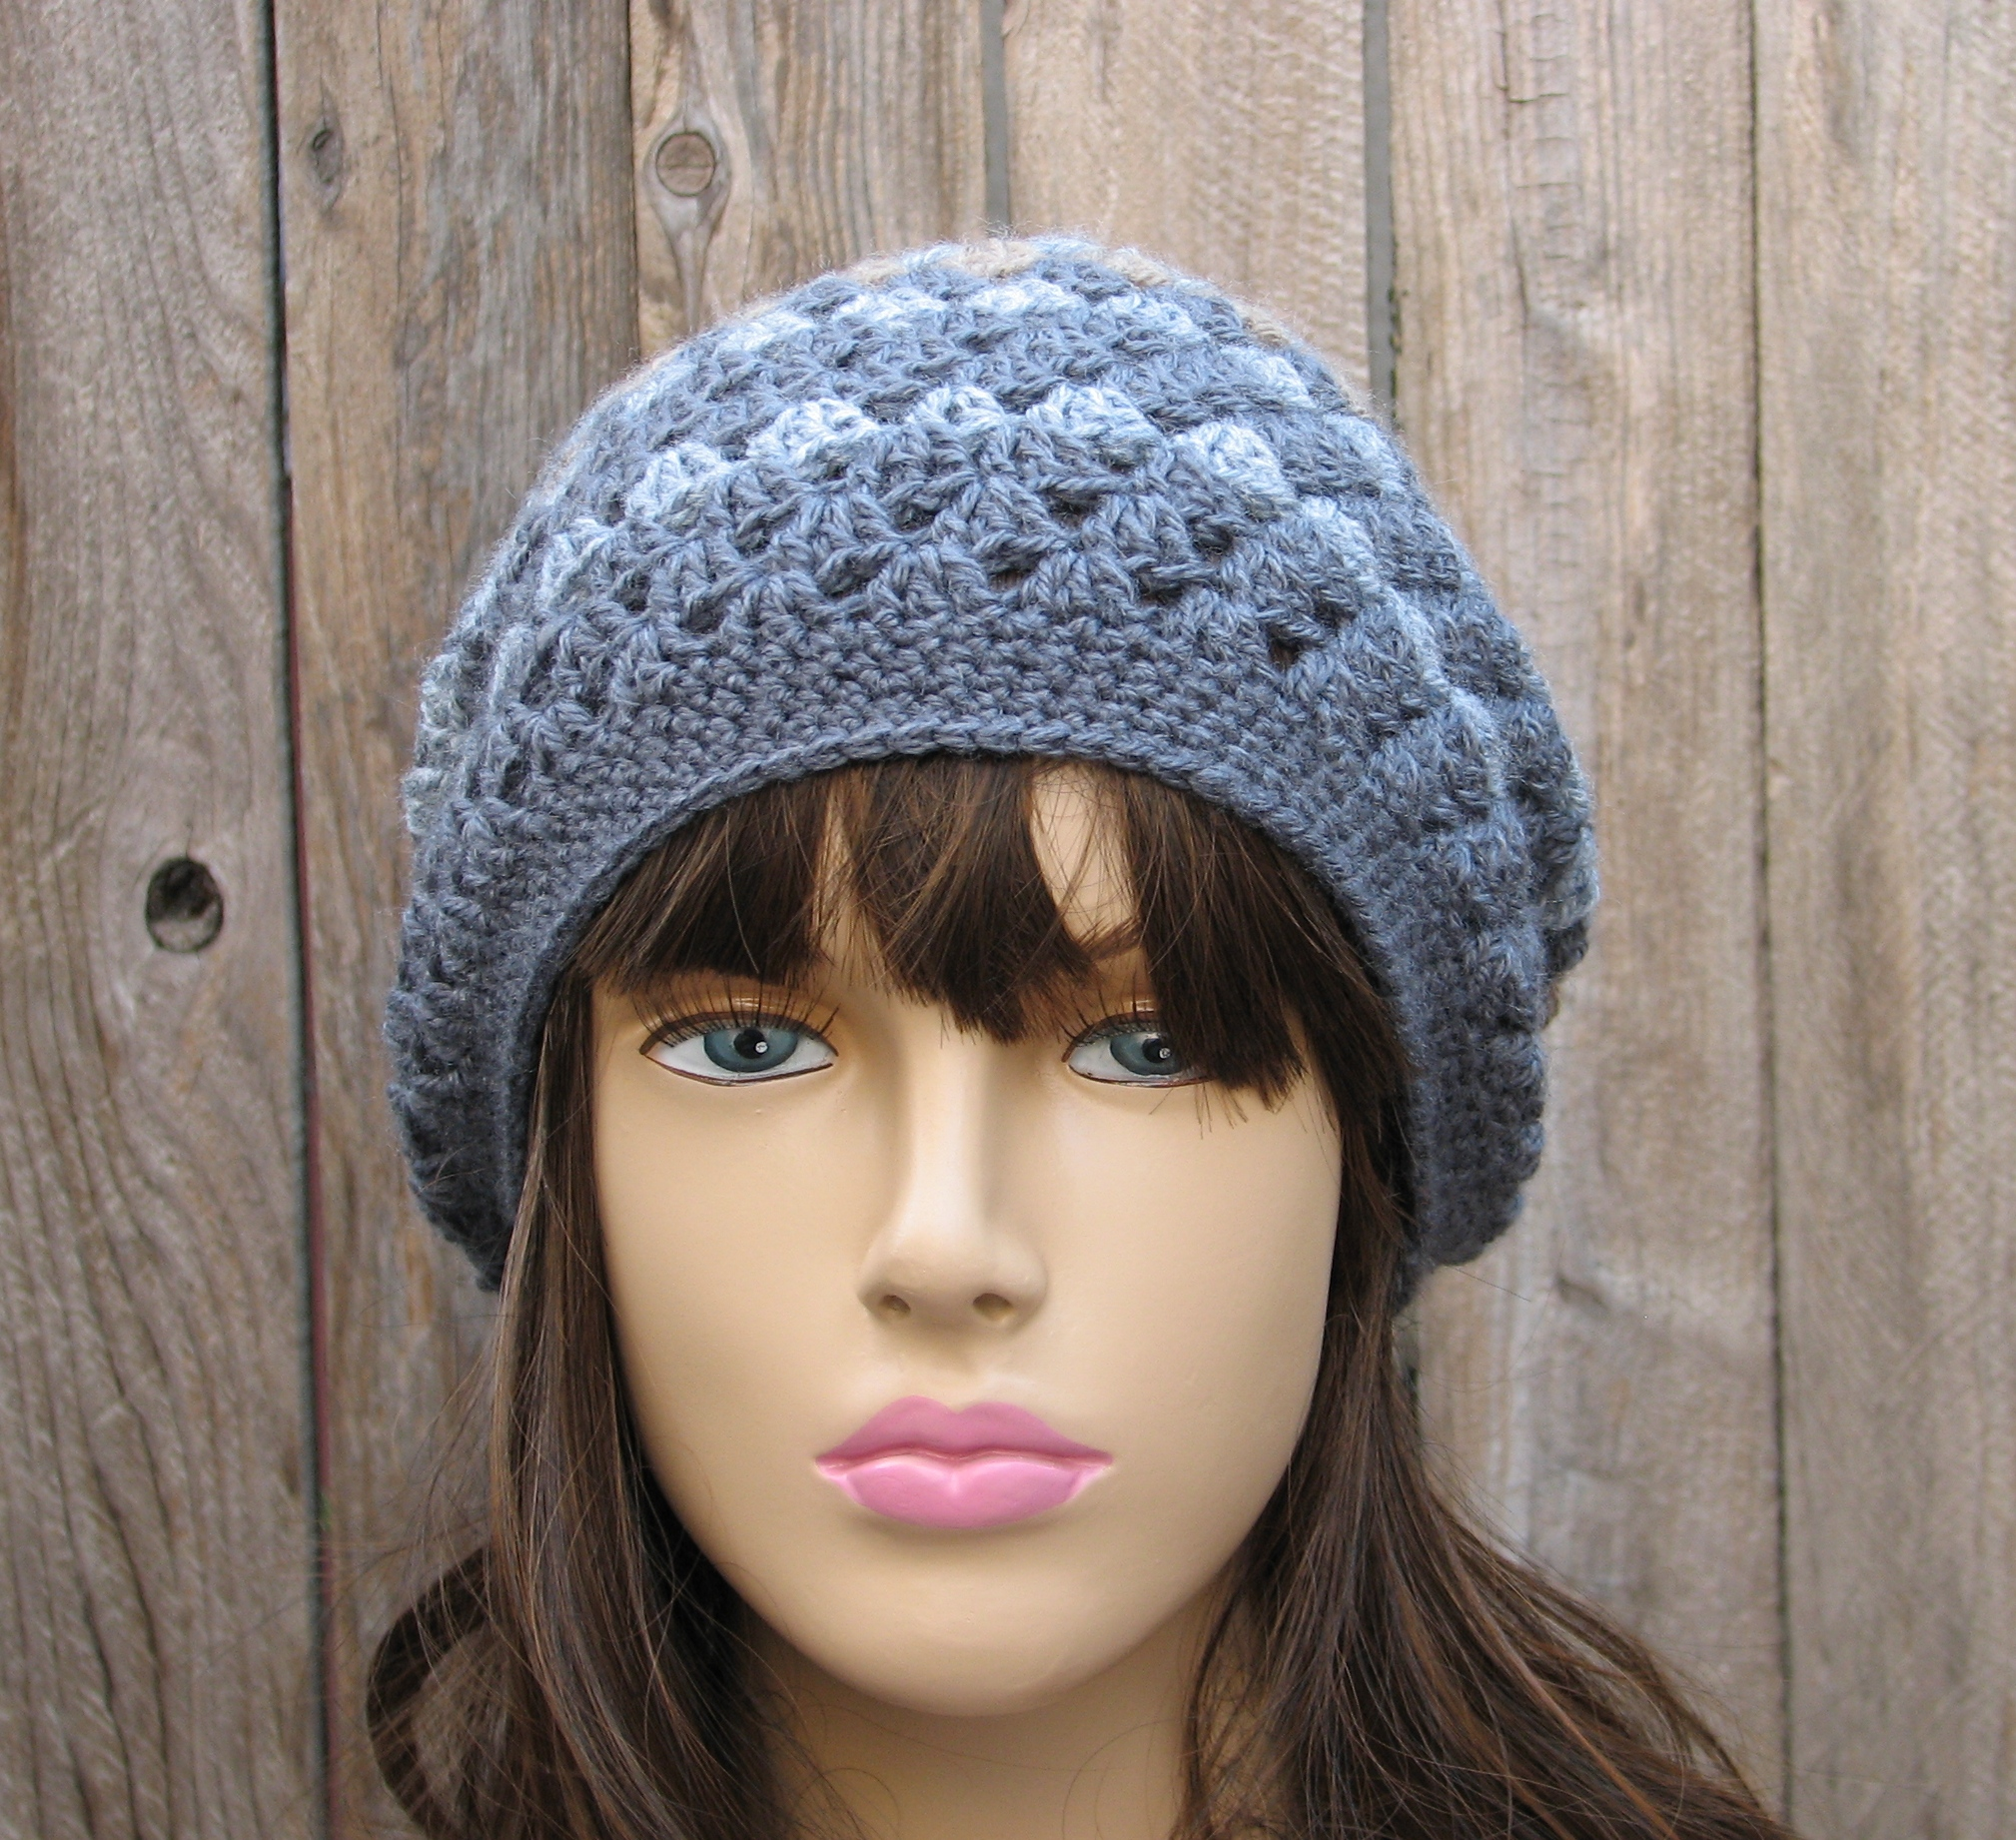 Crochet hat slouchy hat crochet pattern pdfeasy great for crochet hat slouchy hat crochet pattern pdfeasy great for beginners pattern no 27 on luulla bankloansurffo Images